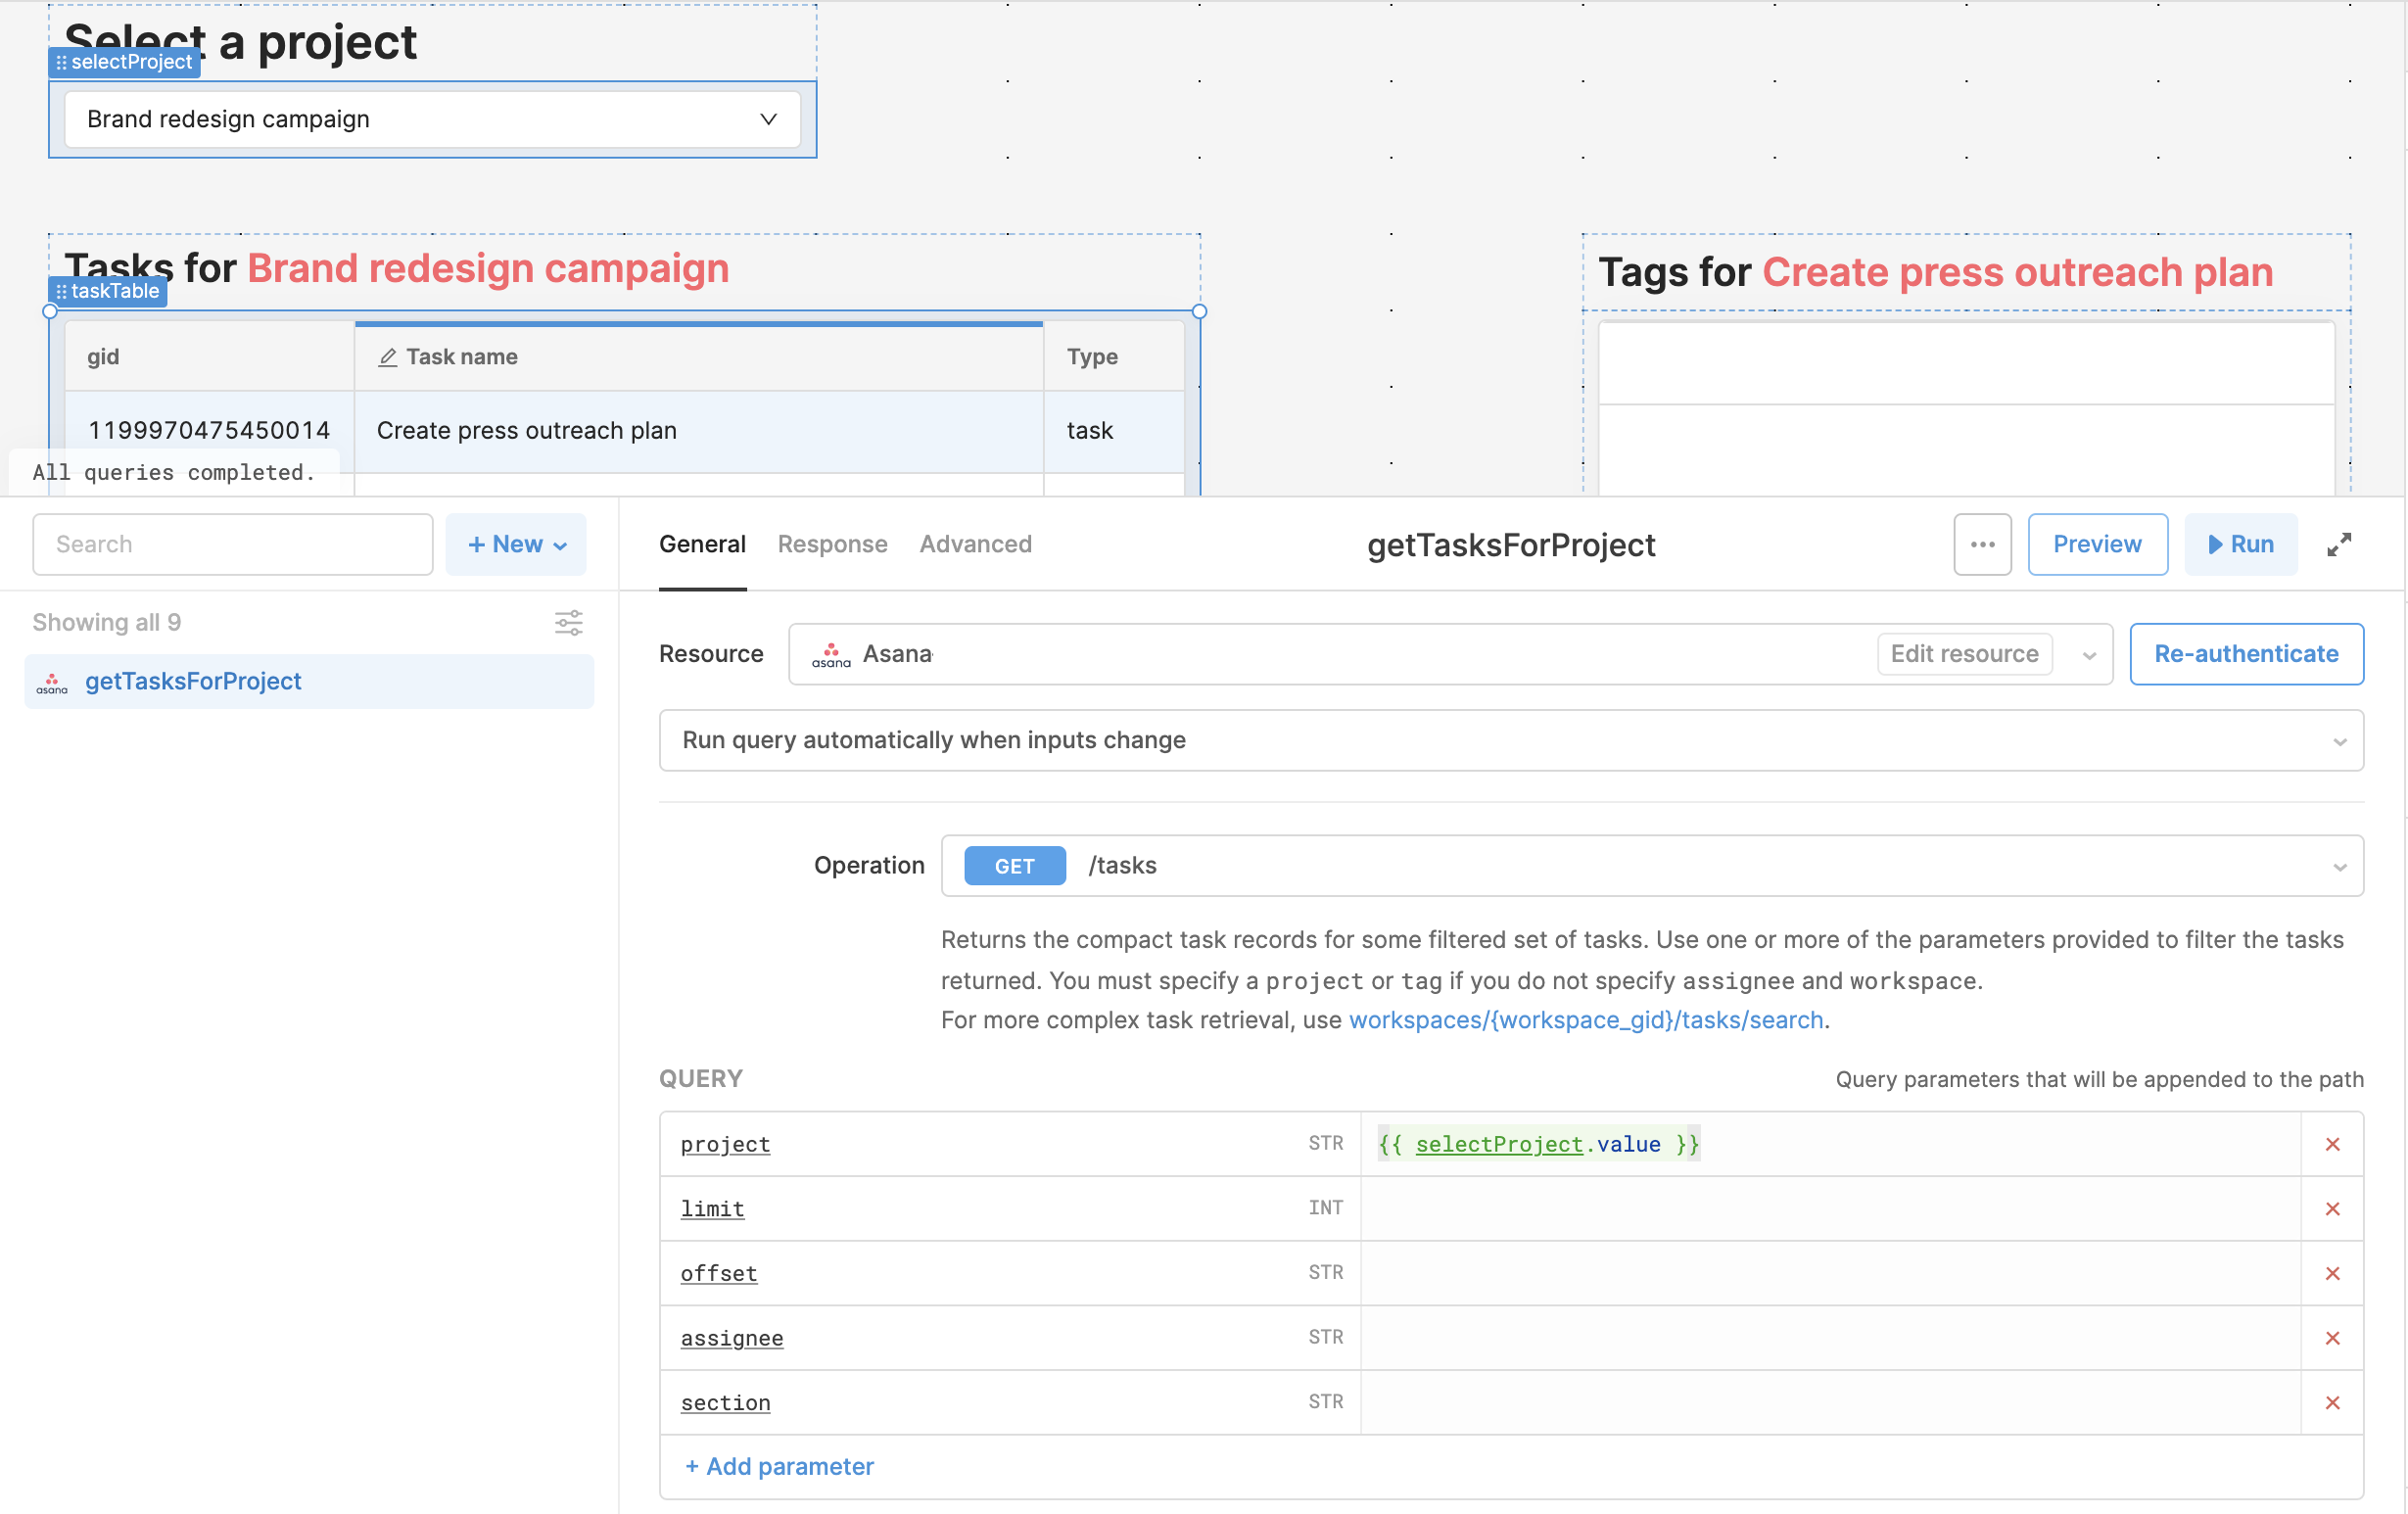 GET `/tasks` endpoint with the project specified from a dropdown.